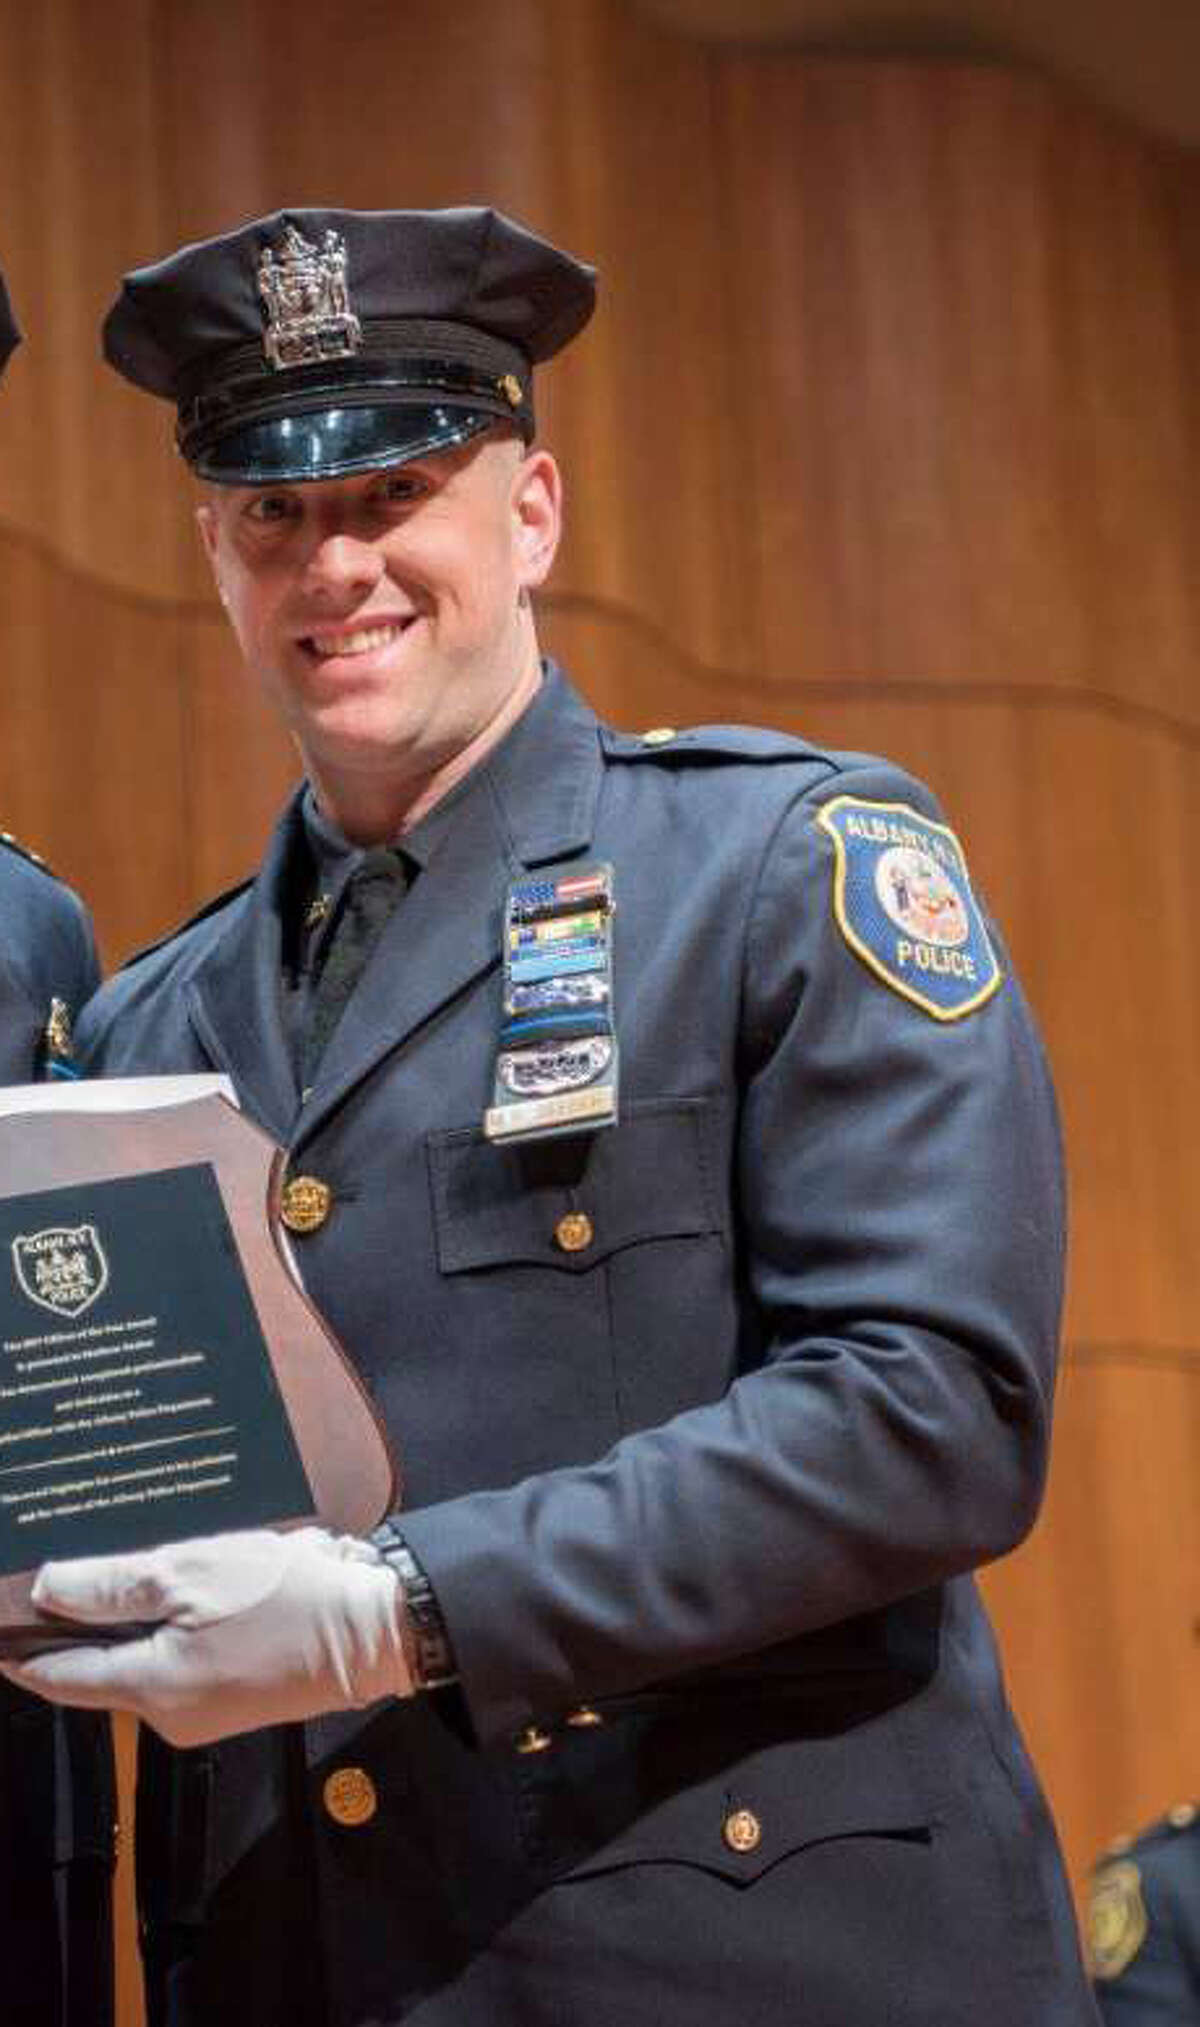 Last year, two other officers were placed on unpaid suspension, including Officer Matthew Seeber, above.